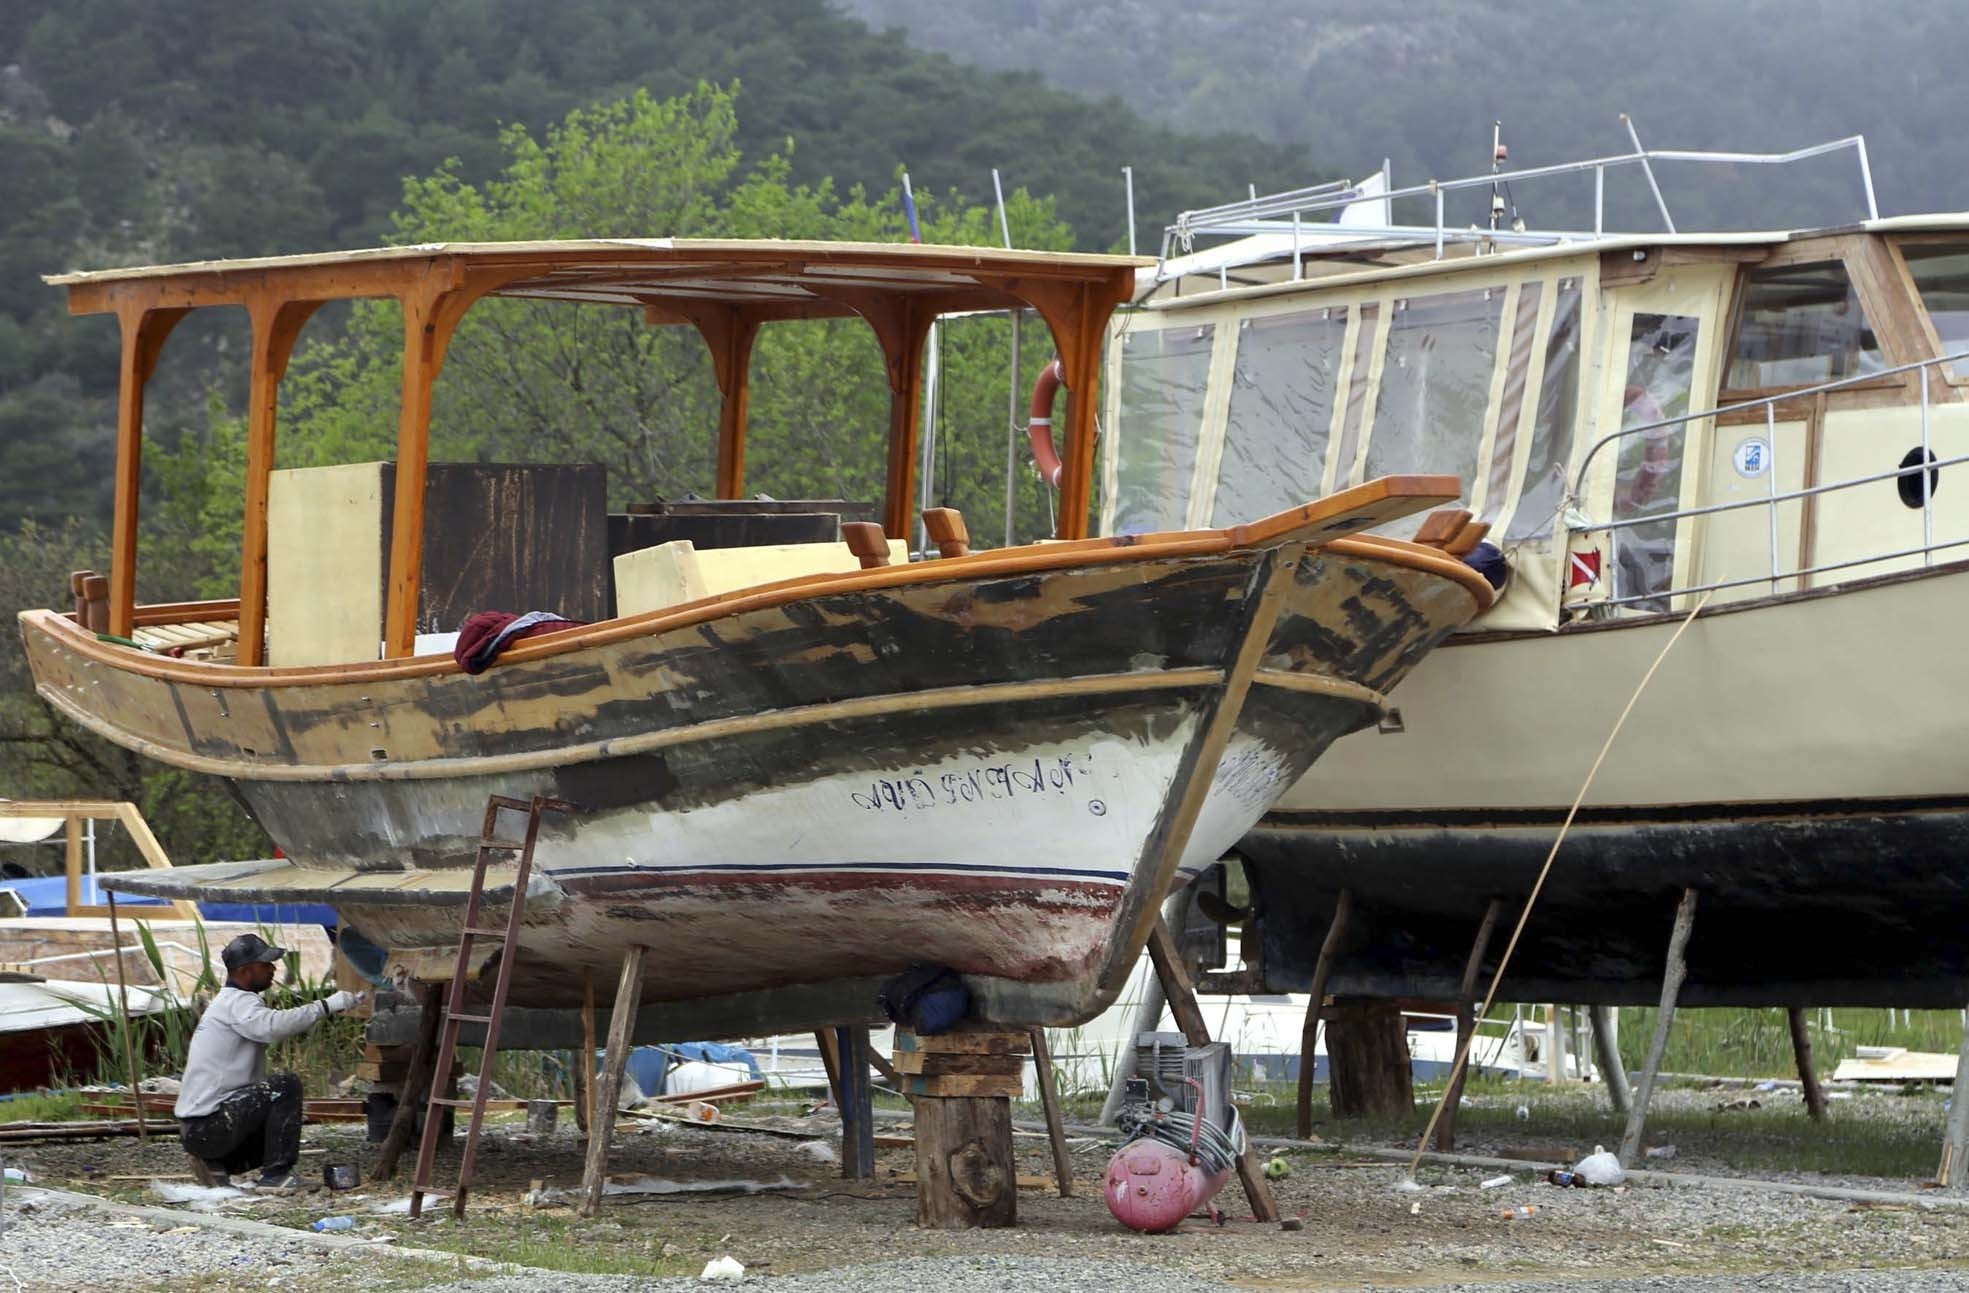 Tour boats on the Dalyan Canal are put under meticulous maintenance at the local boat yard.